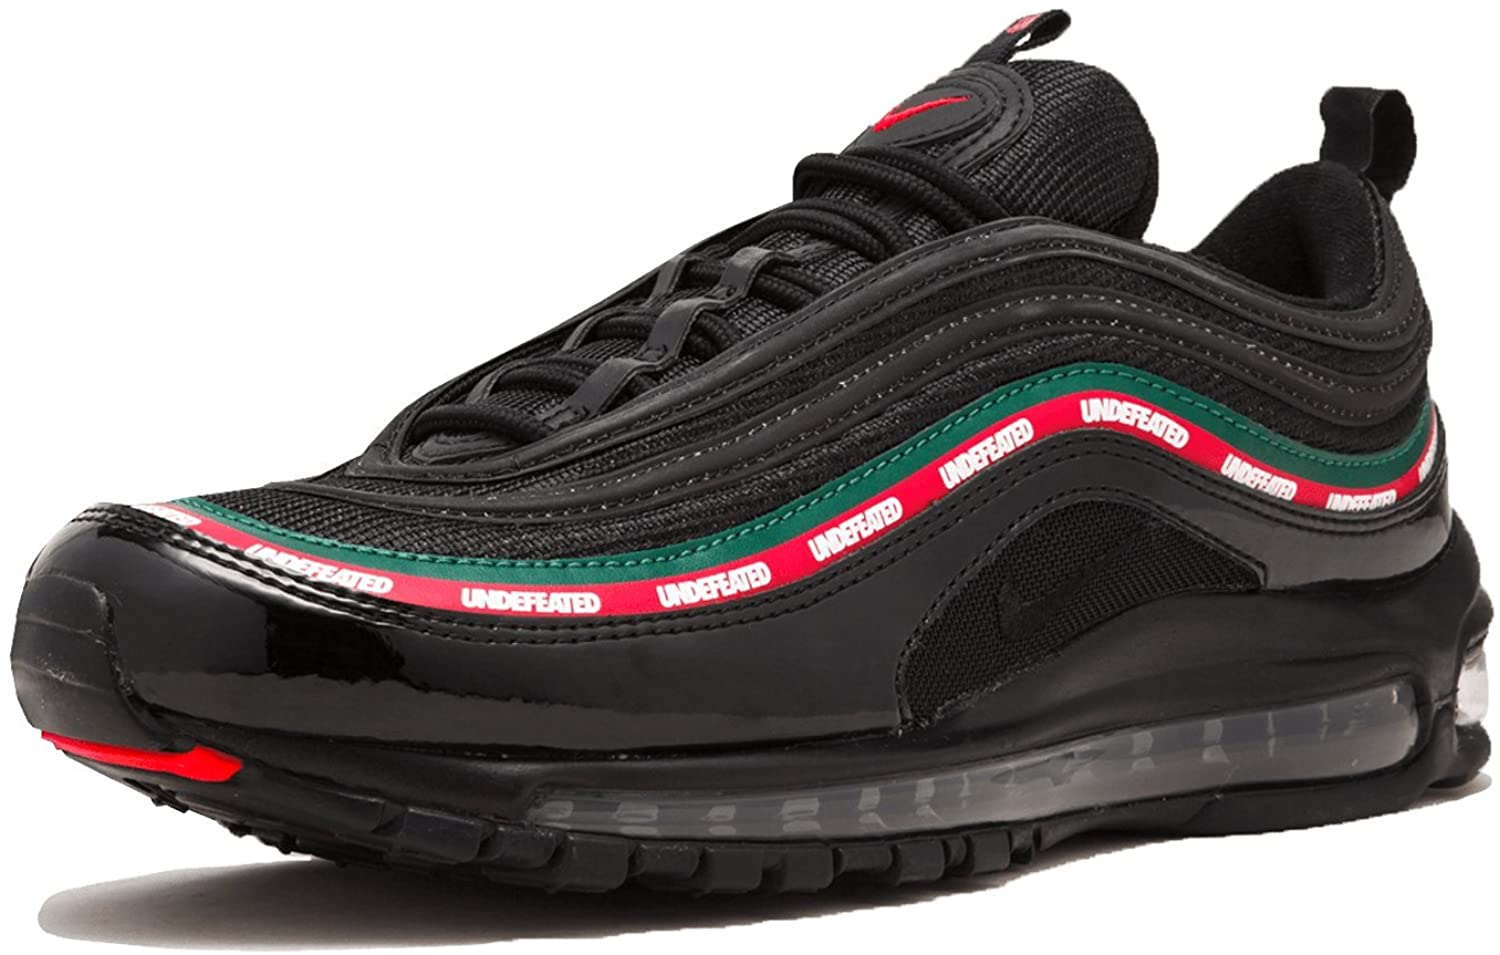 nike air max 97 x undefeated black